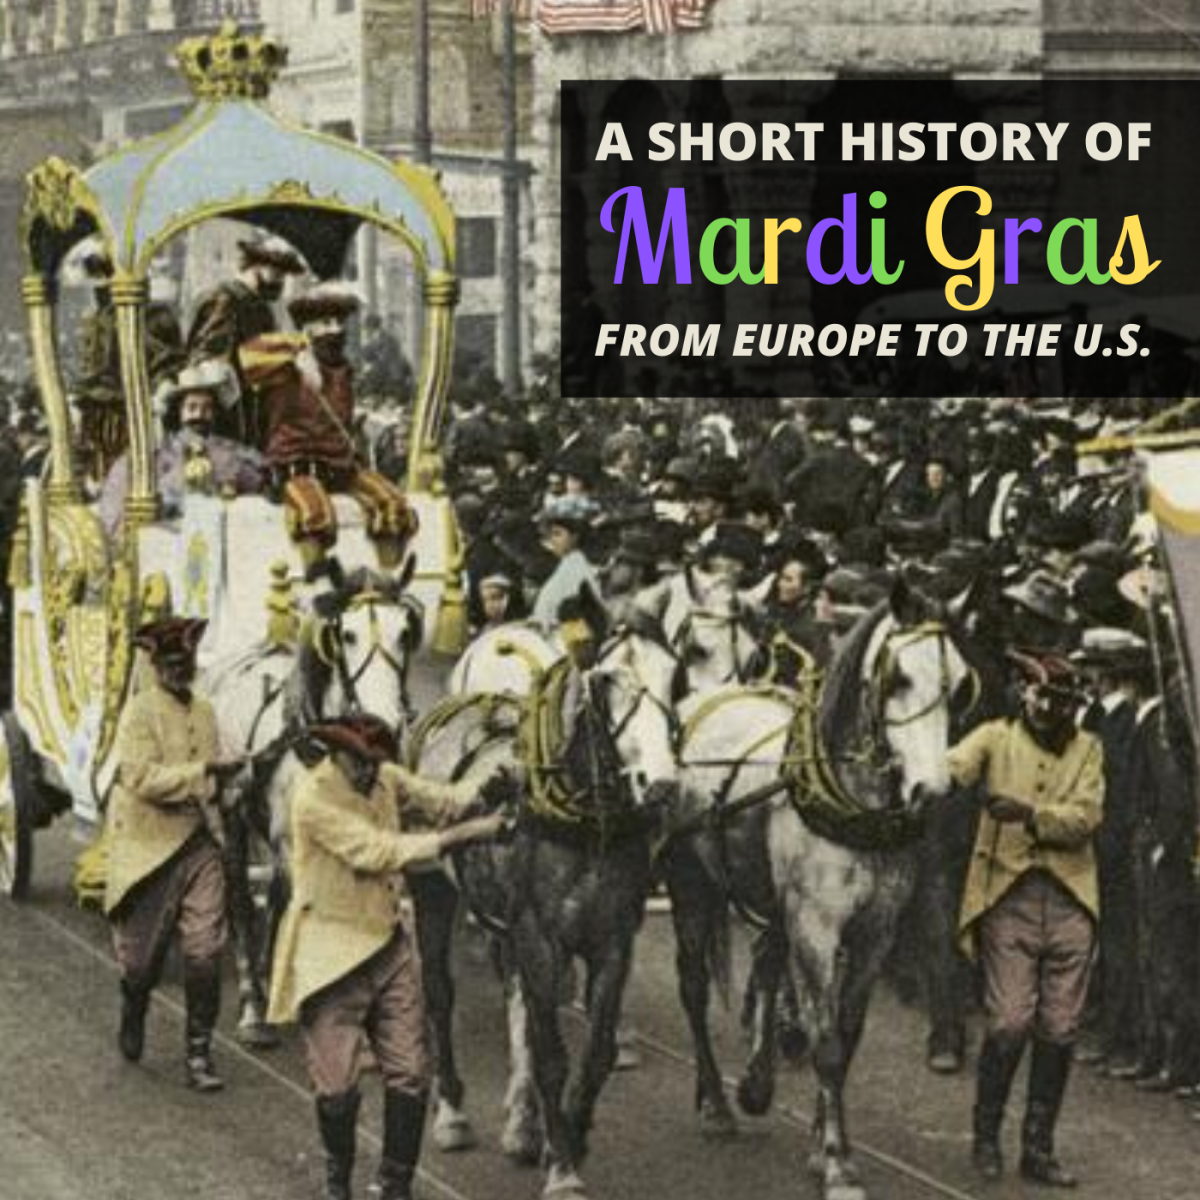 A Brief History of Mardi Gras in America